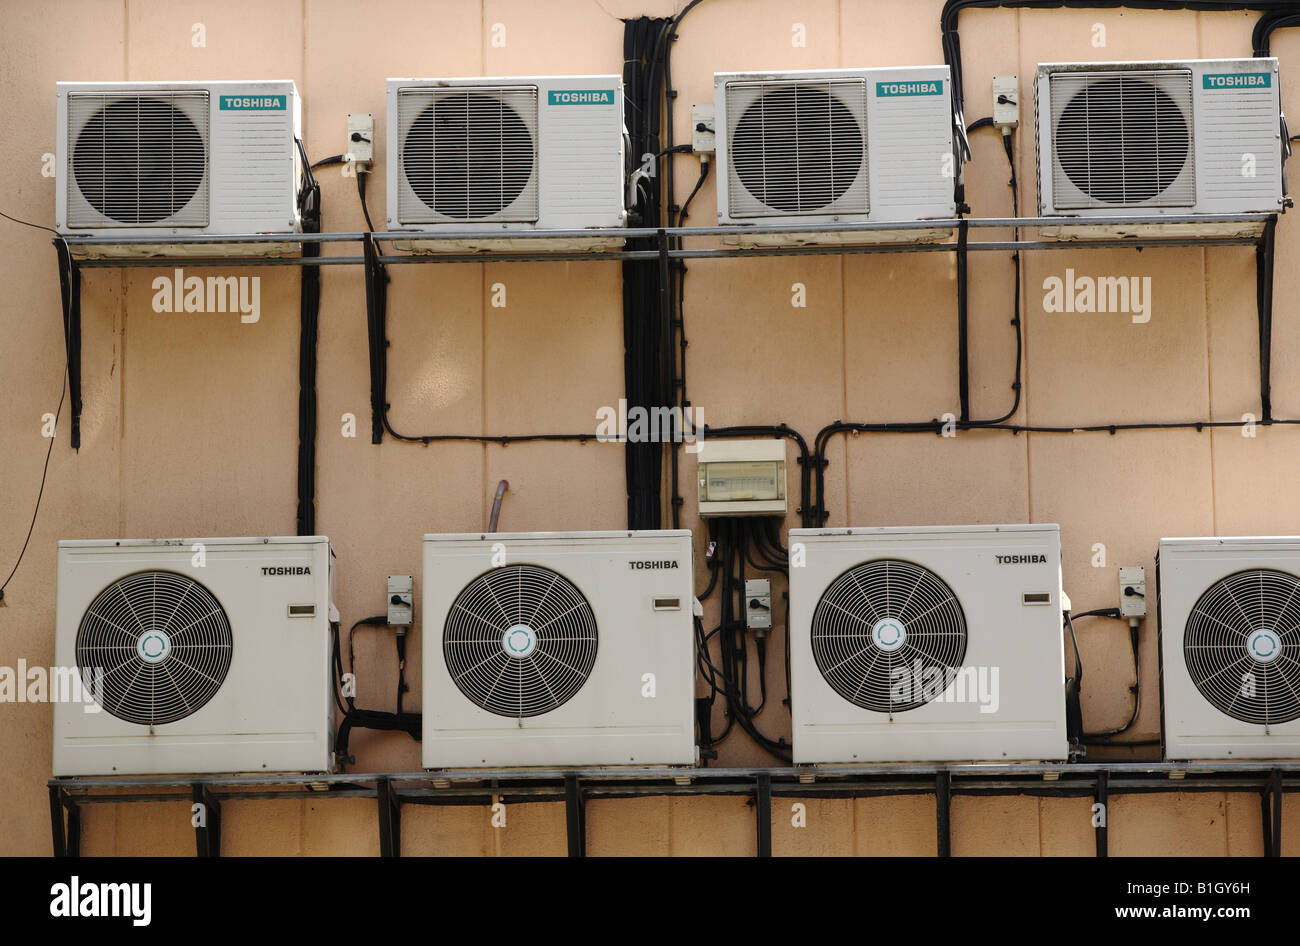 Air conditioning units on side of building. - Stock Image